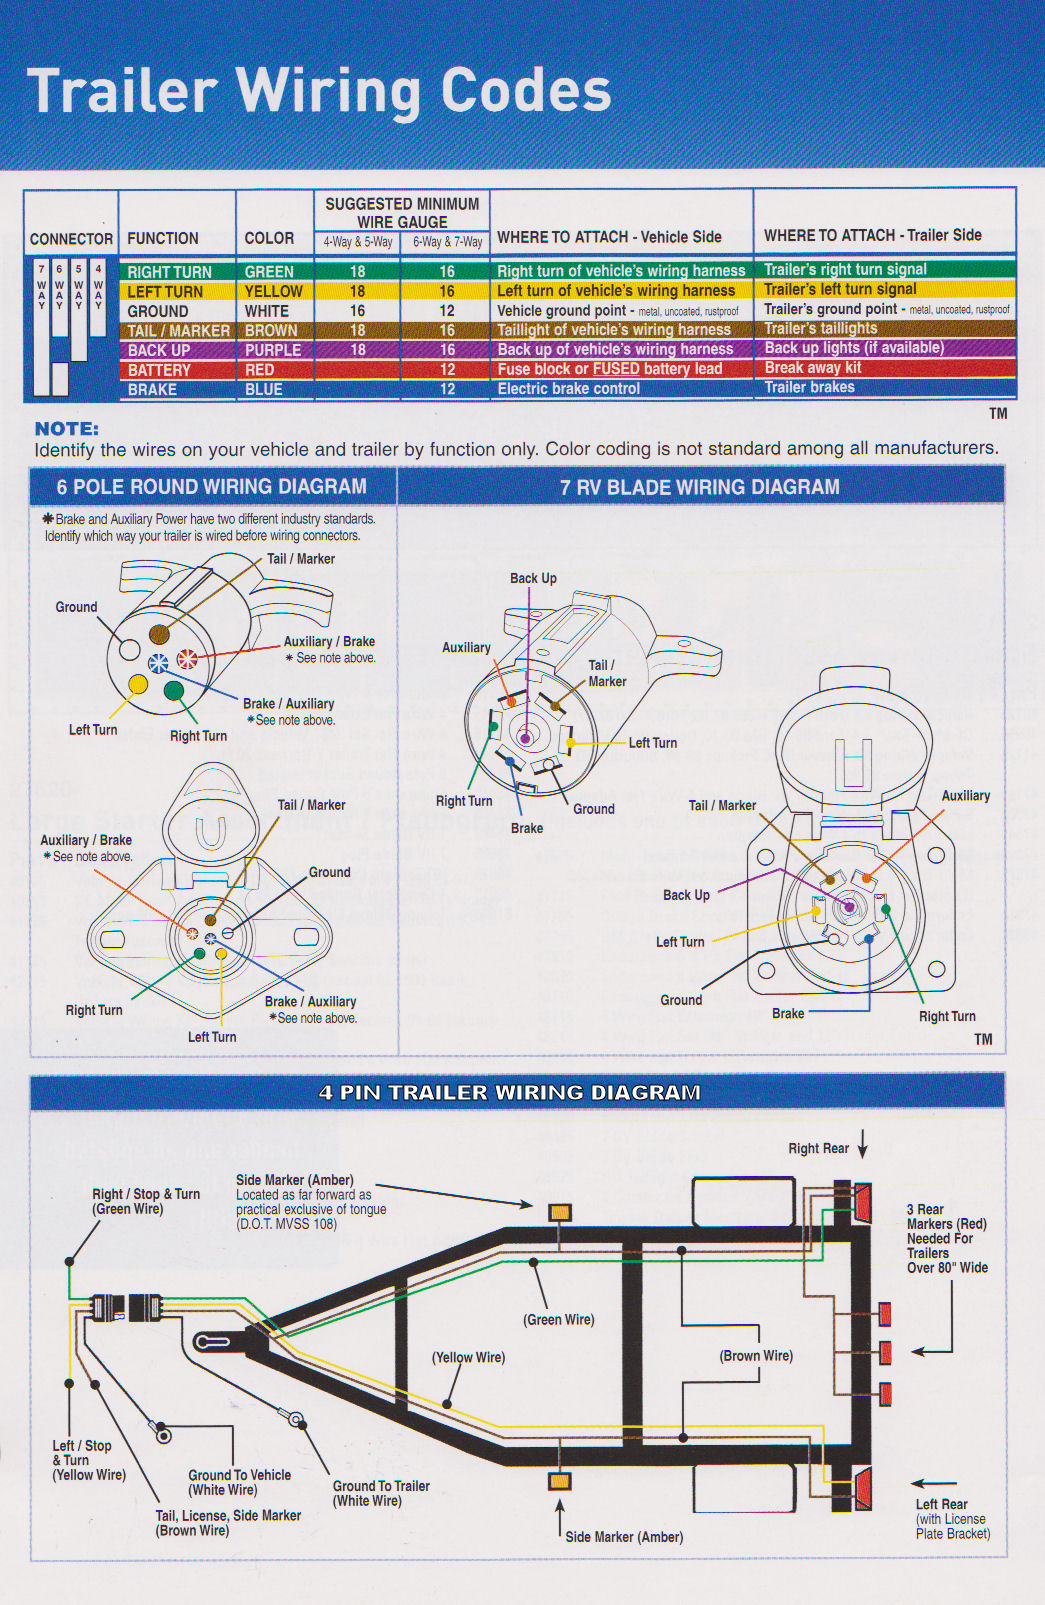 Trailer Wiring Diagram